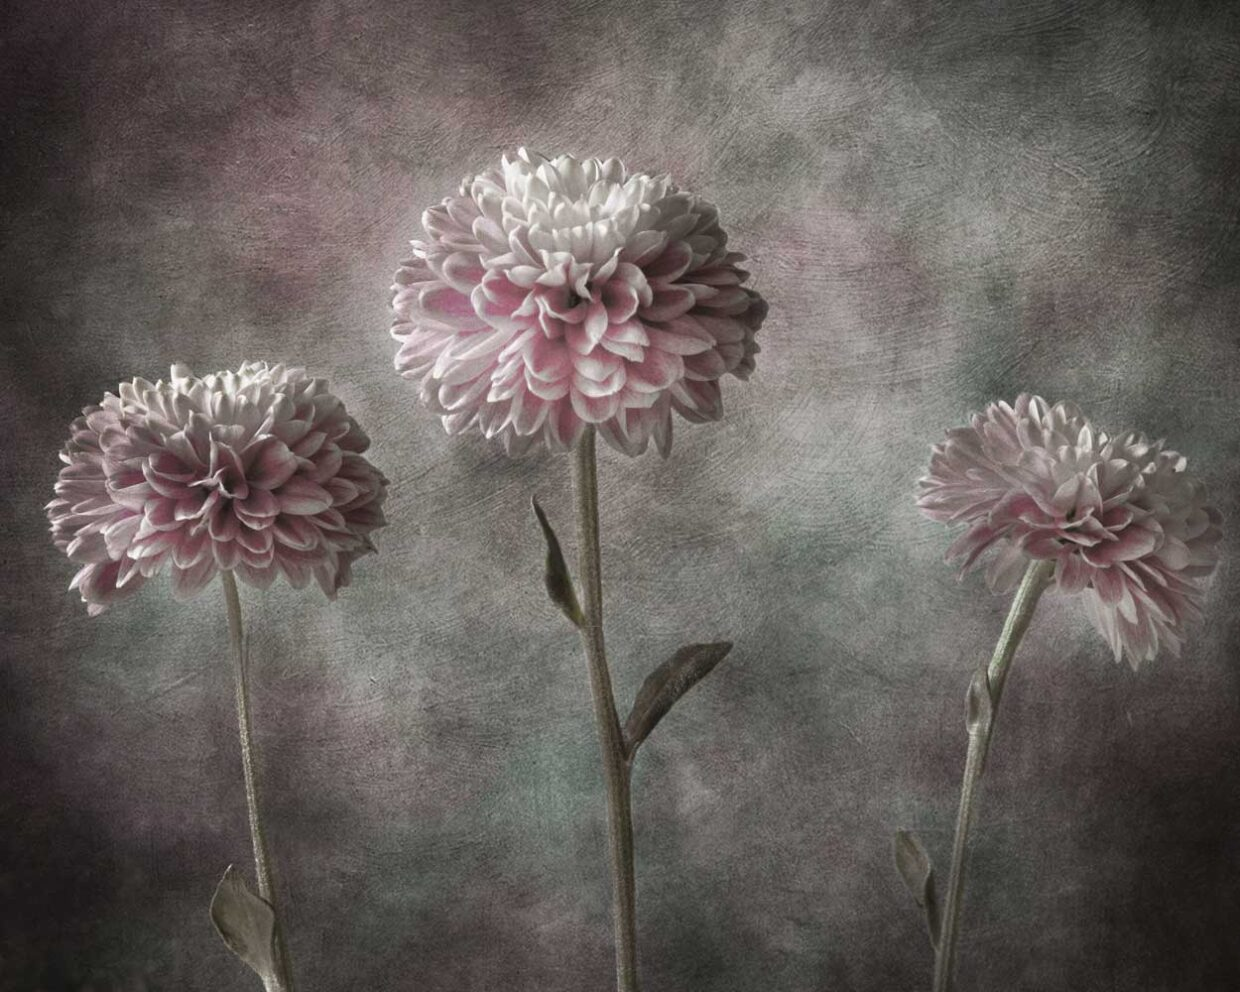 Floral art images available as prints